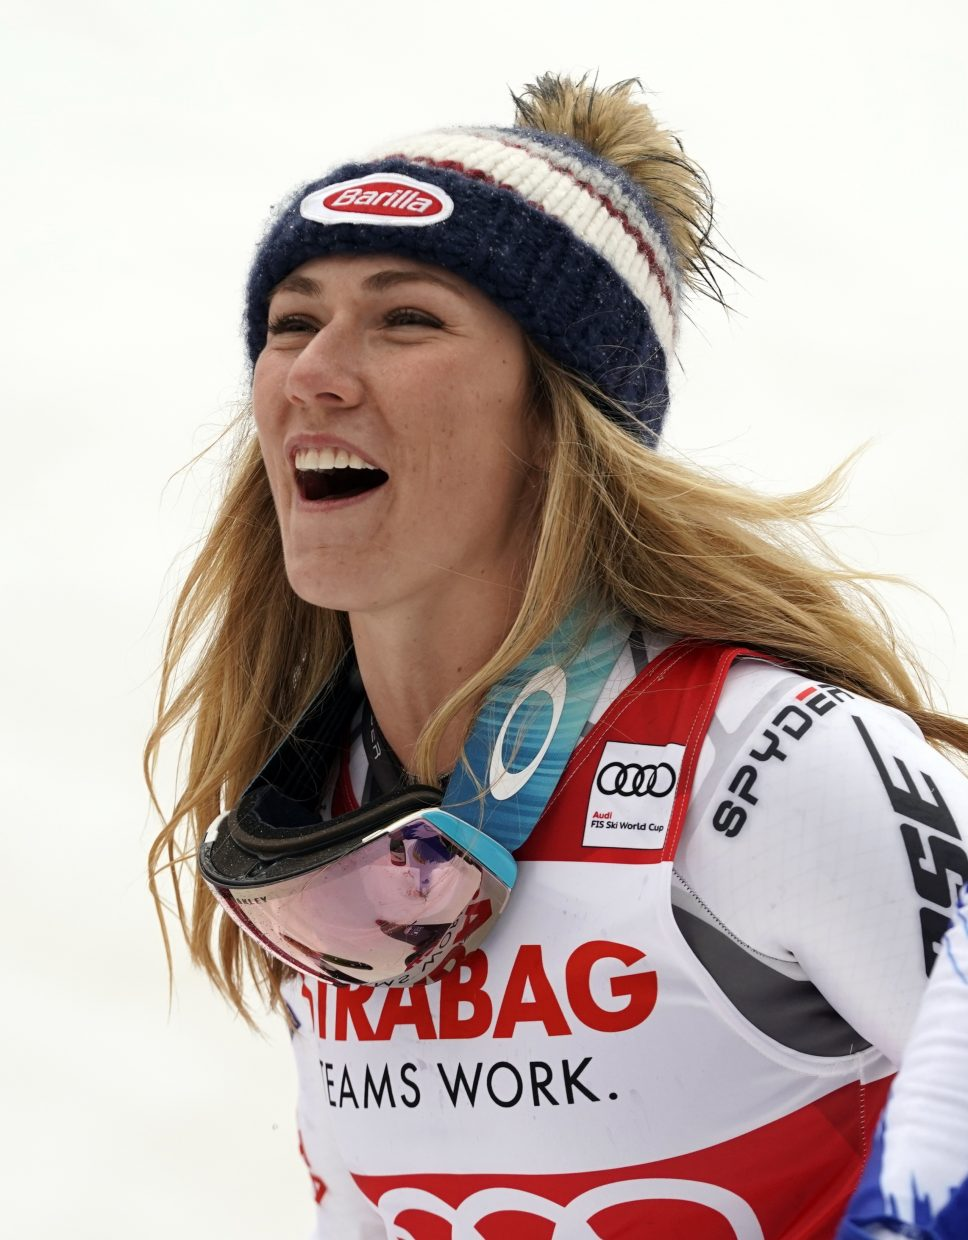 By finishing third in Friday's World Cup giant slalom in Spindleruv Mlyn, Czech Republic, Mikaela Shiffrin has all but assured herself of the World Cup GS title. She leads by 97 points with one race remaining in the season.